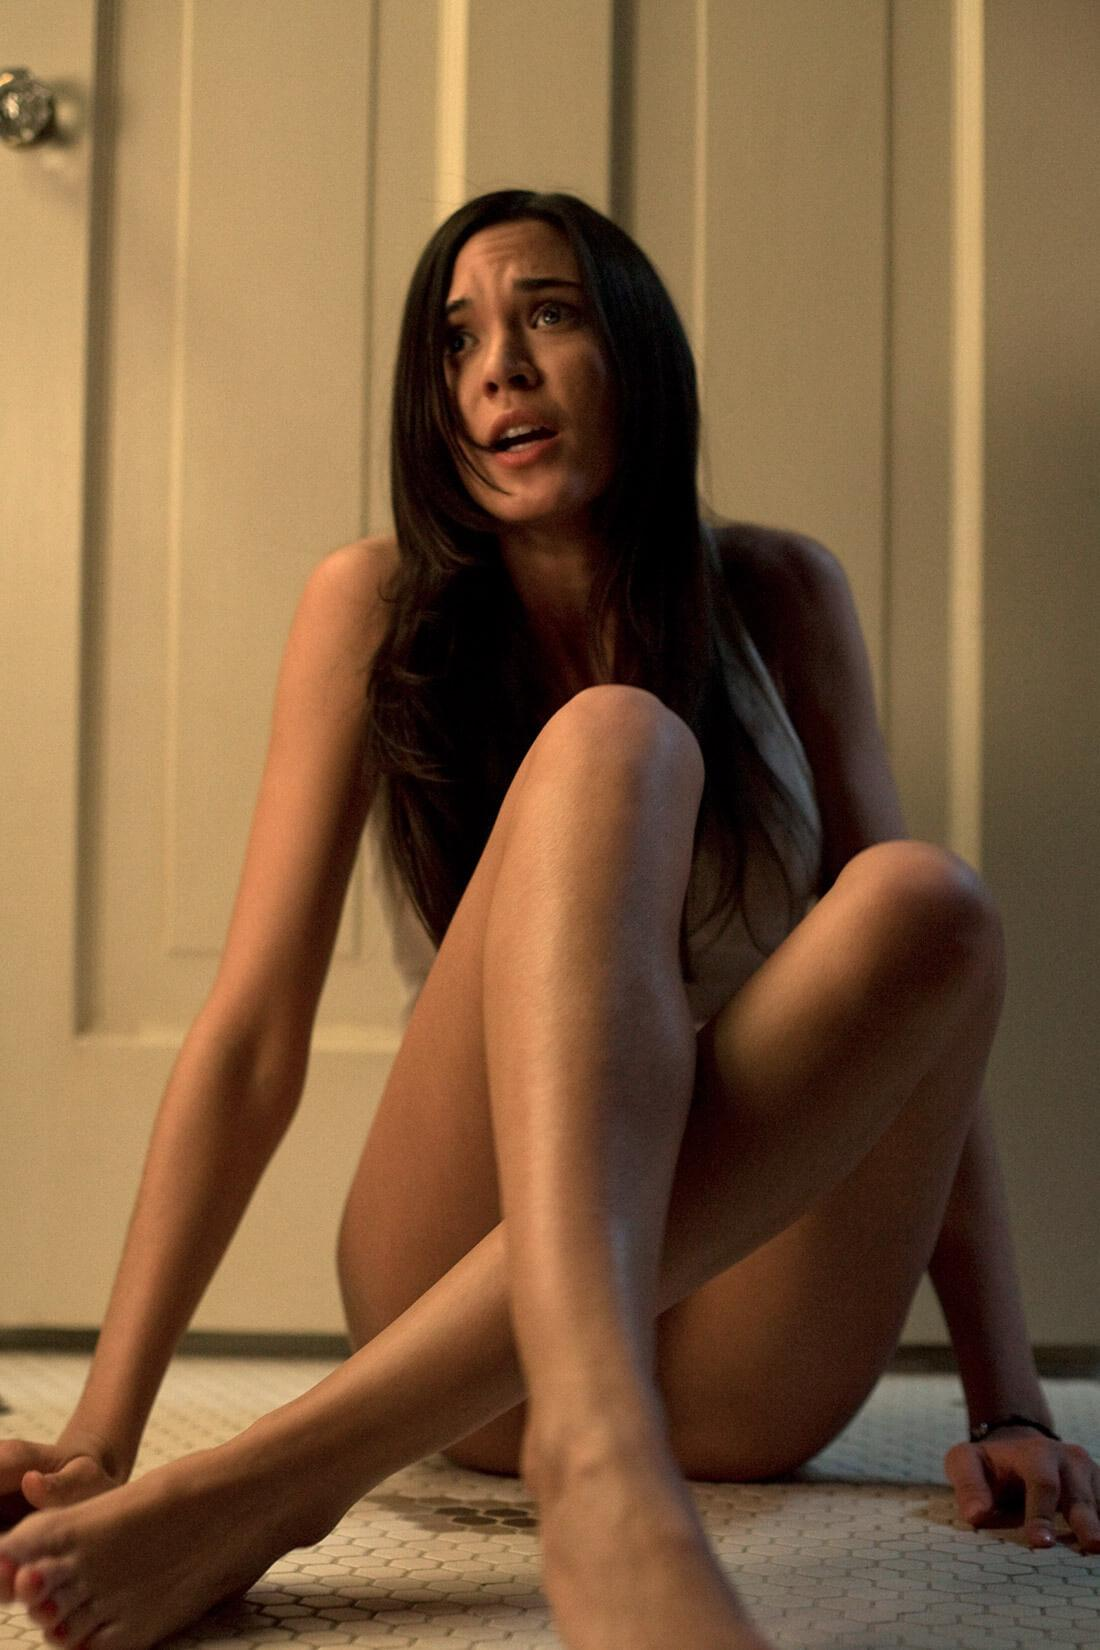 Odette Annable naked pics